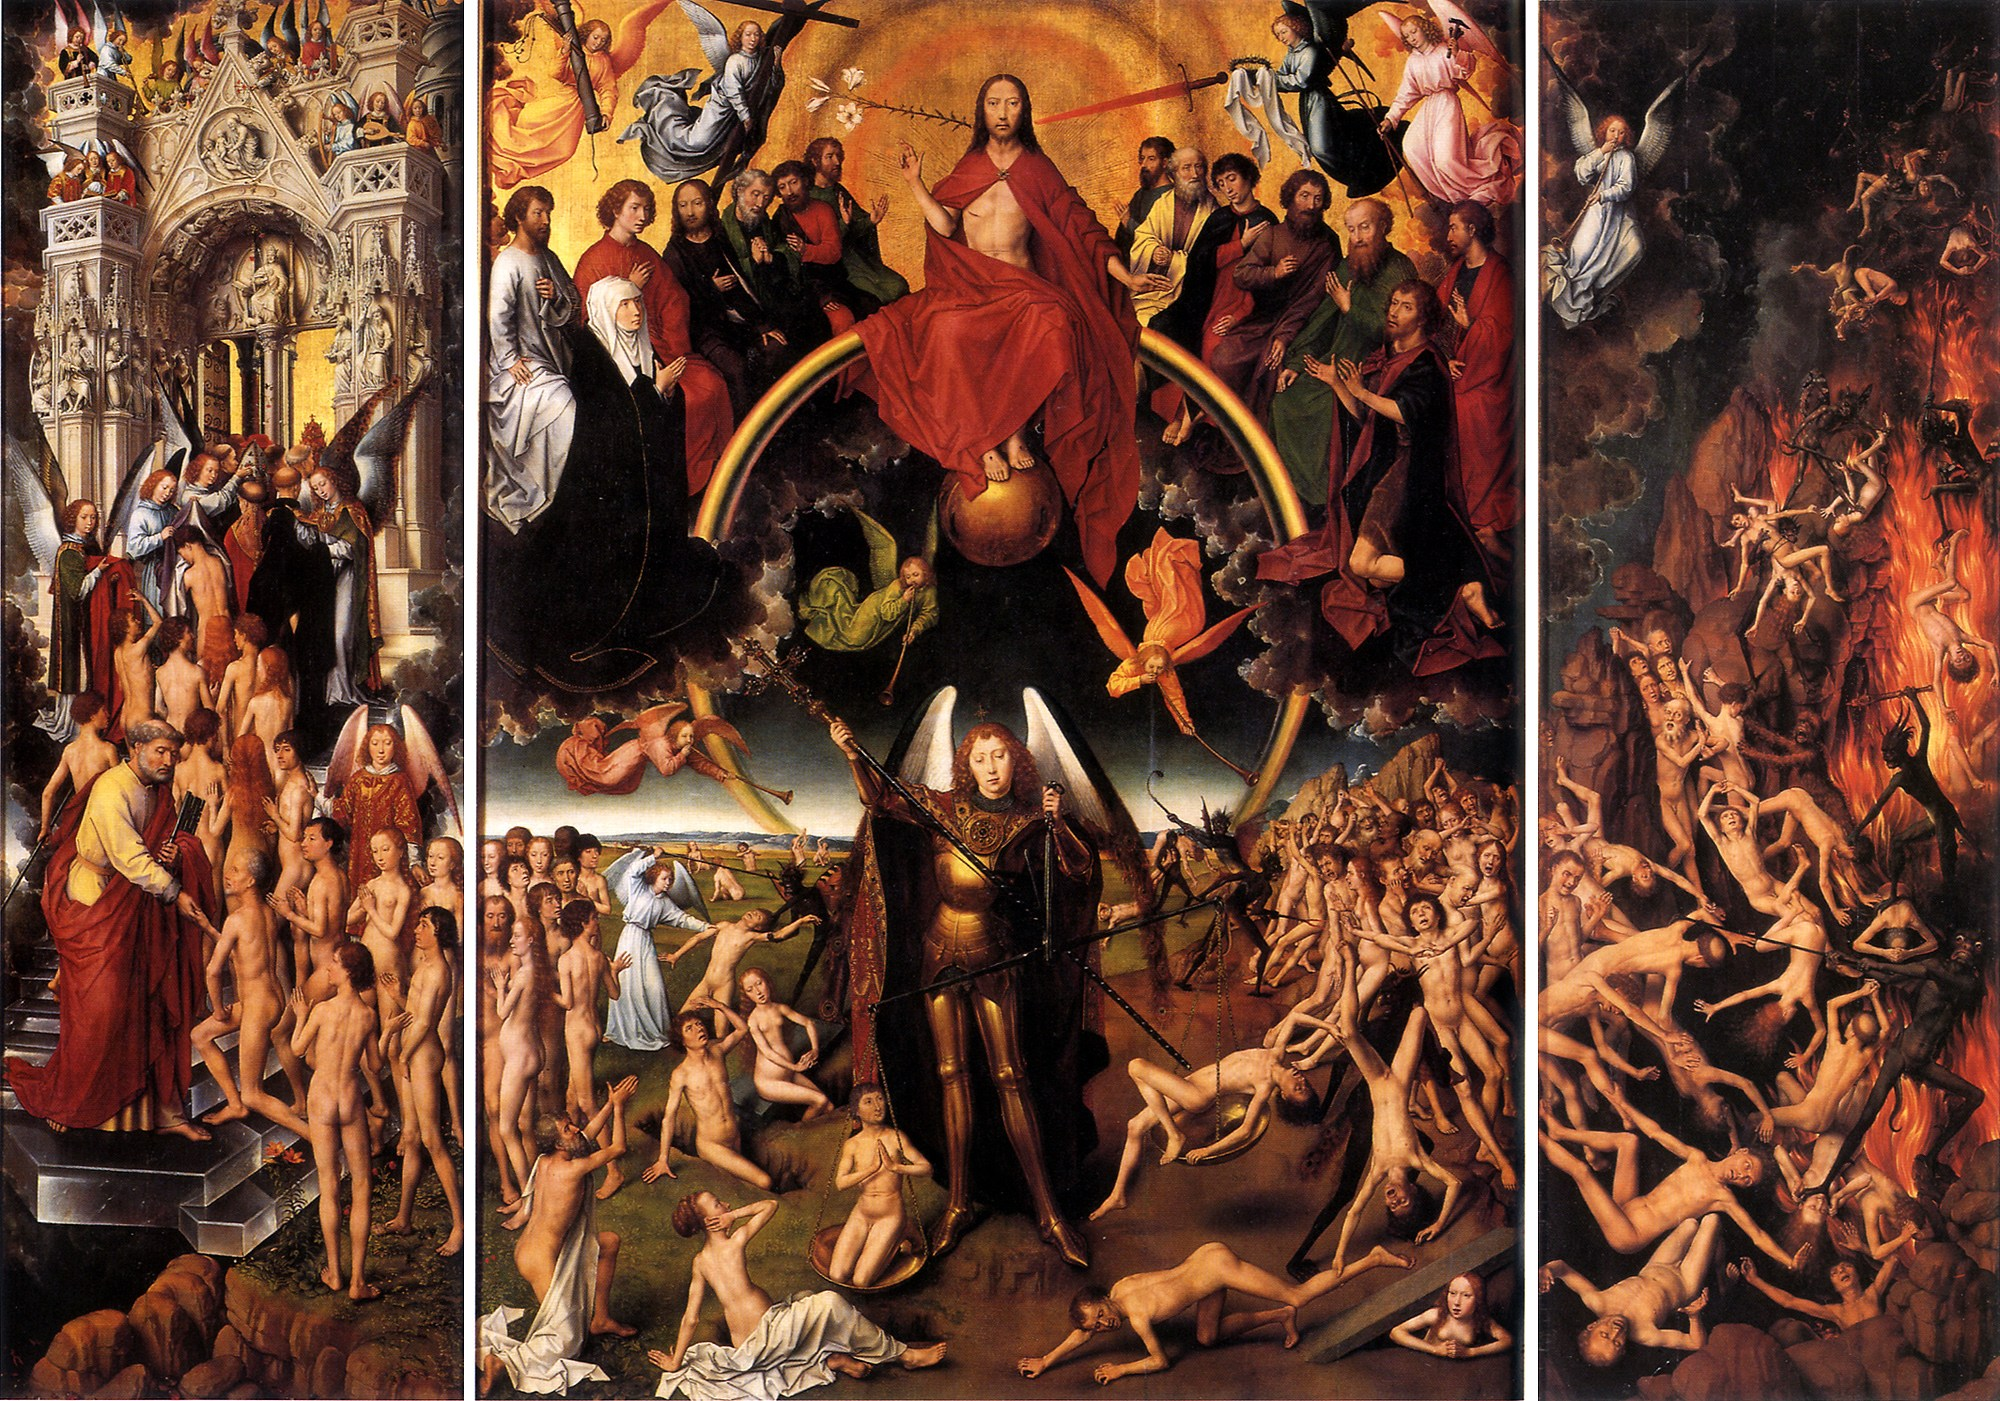 Hans-Memling-The-Last-Judgment-The-First-Stolen-Painting[1].jpg